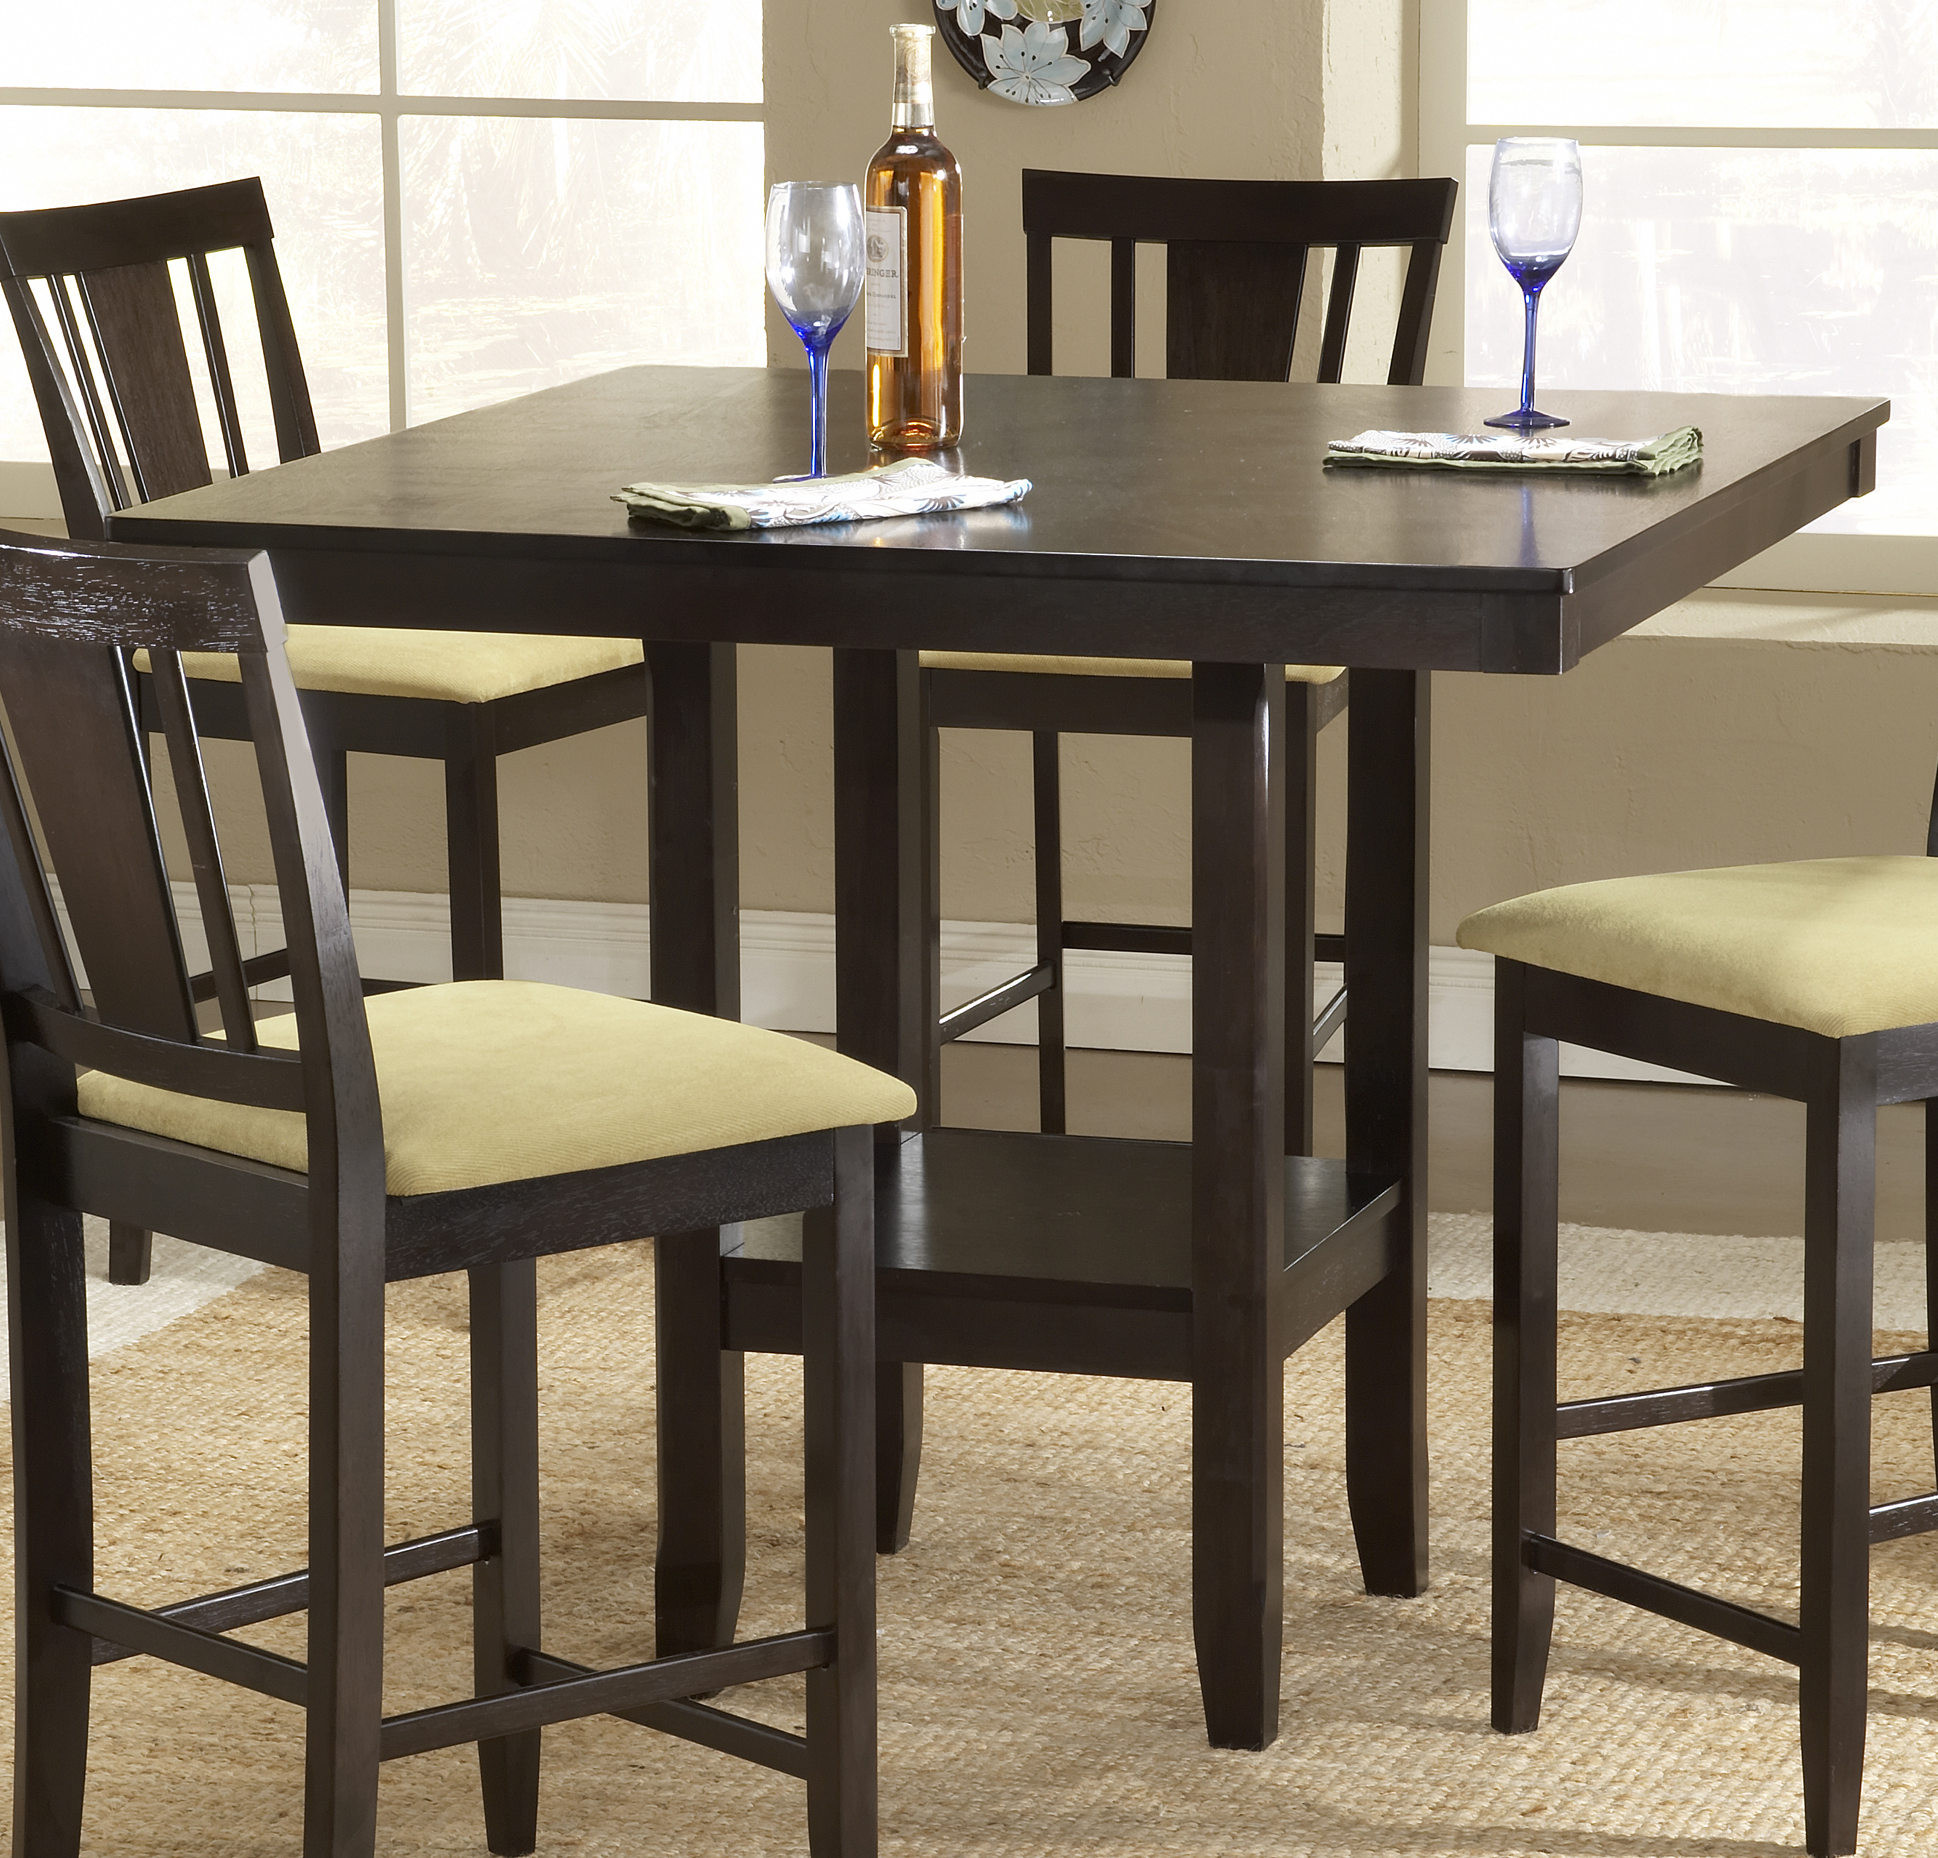 Counter height dinette sets homesfeed Counter height dining table